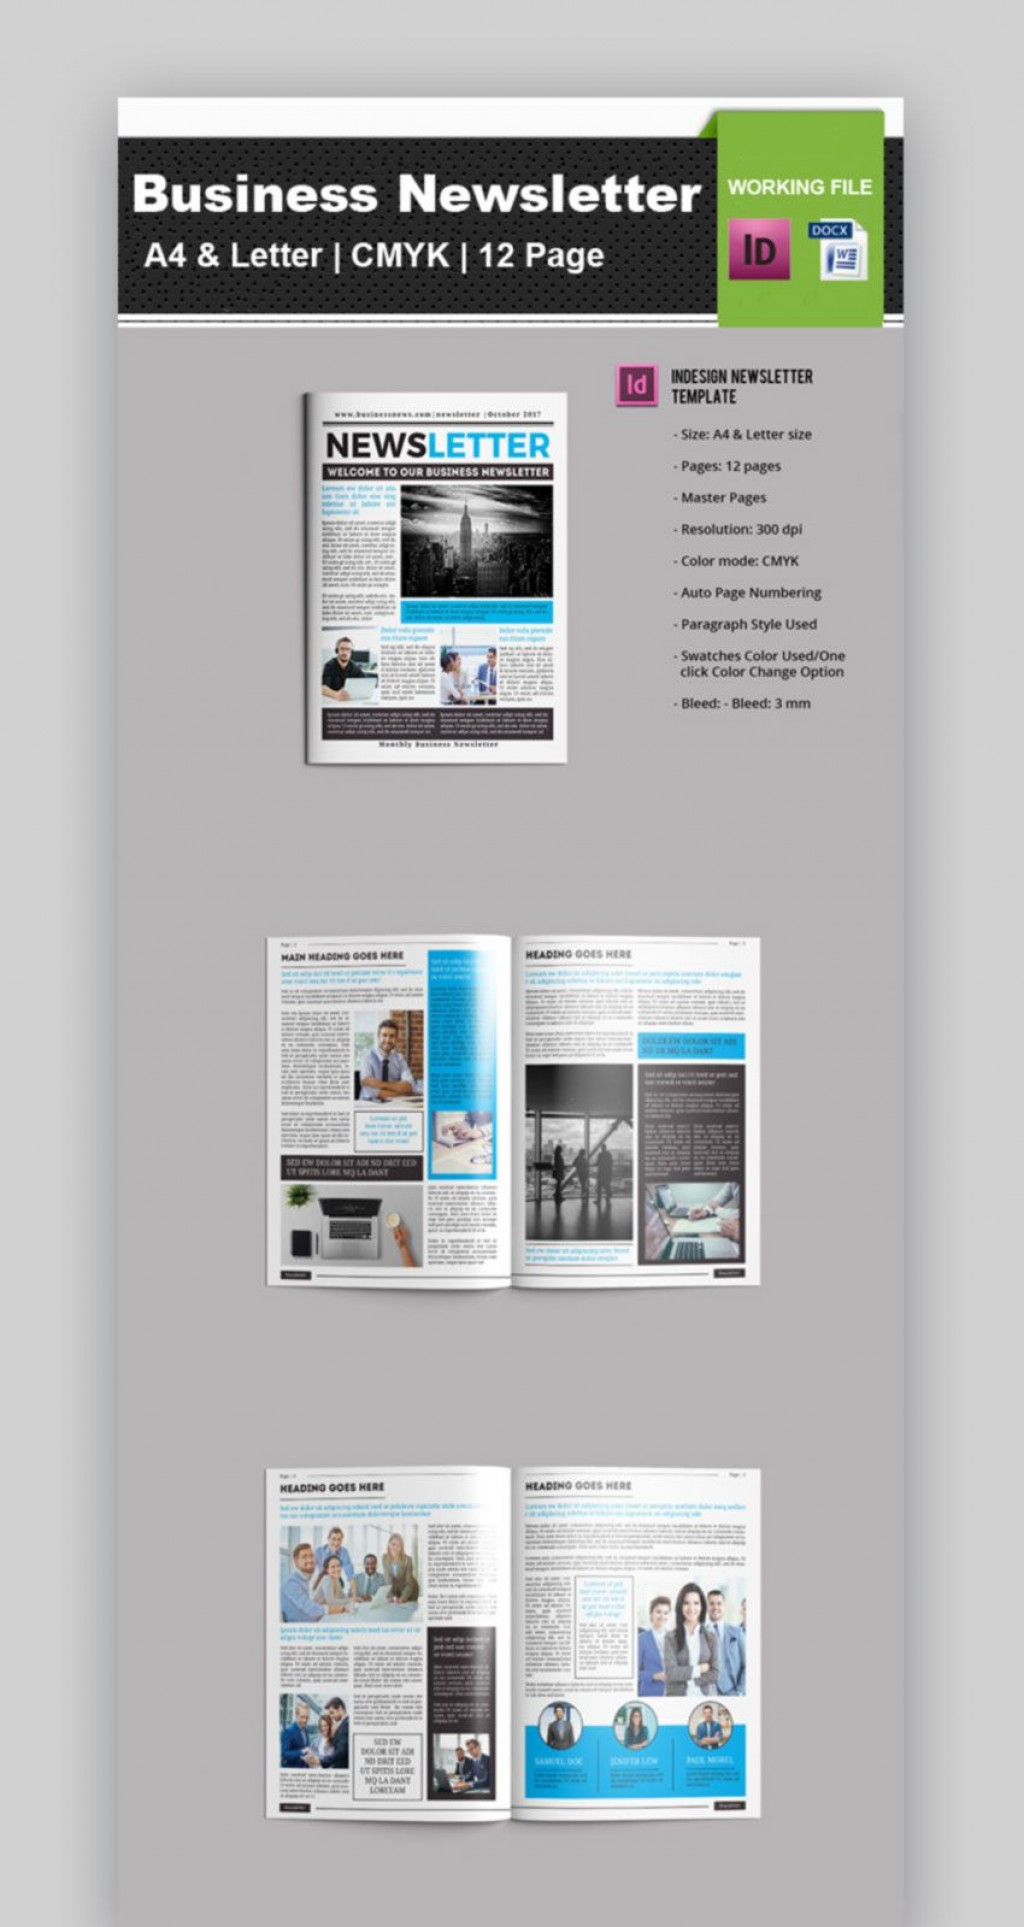 009 Astounding Free Microsoft Word Newsletter Template High Resolution  Templates Download M MedicalLarge